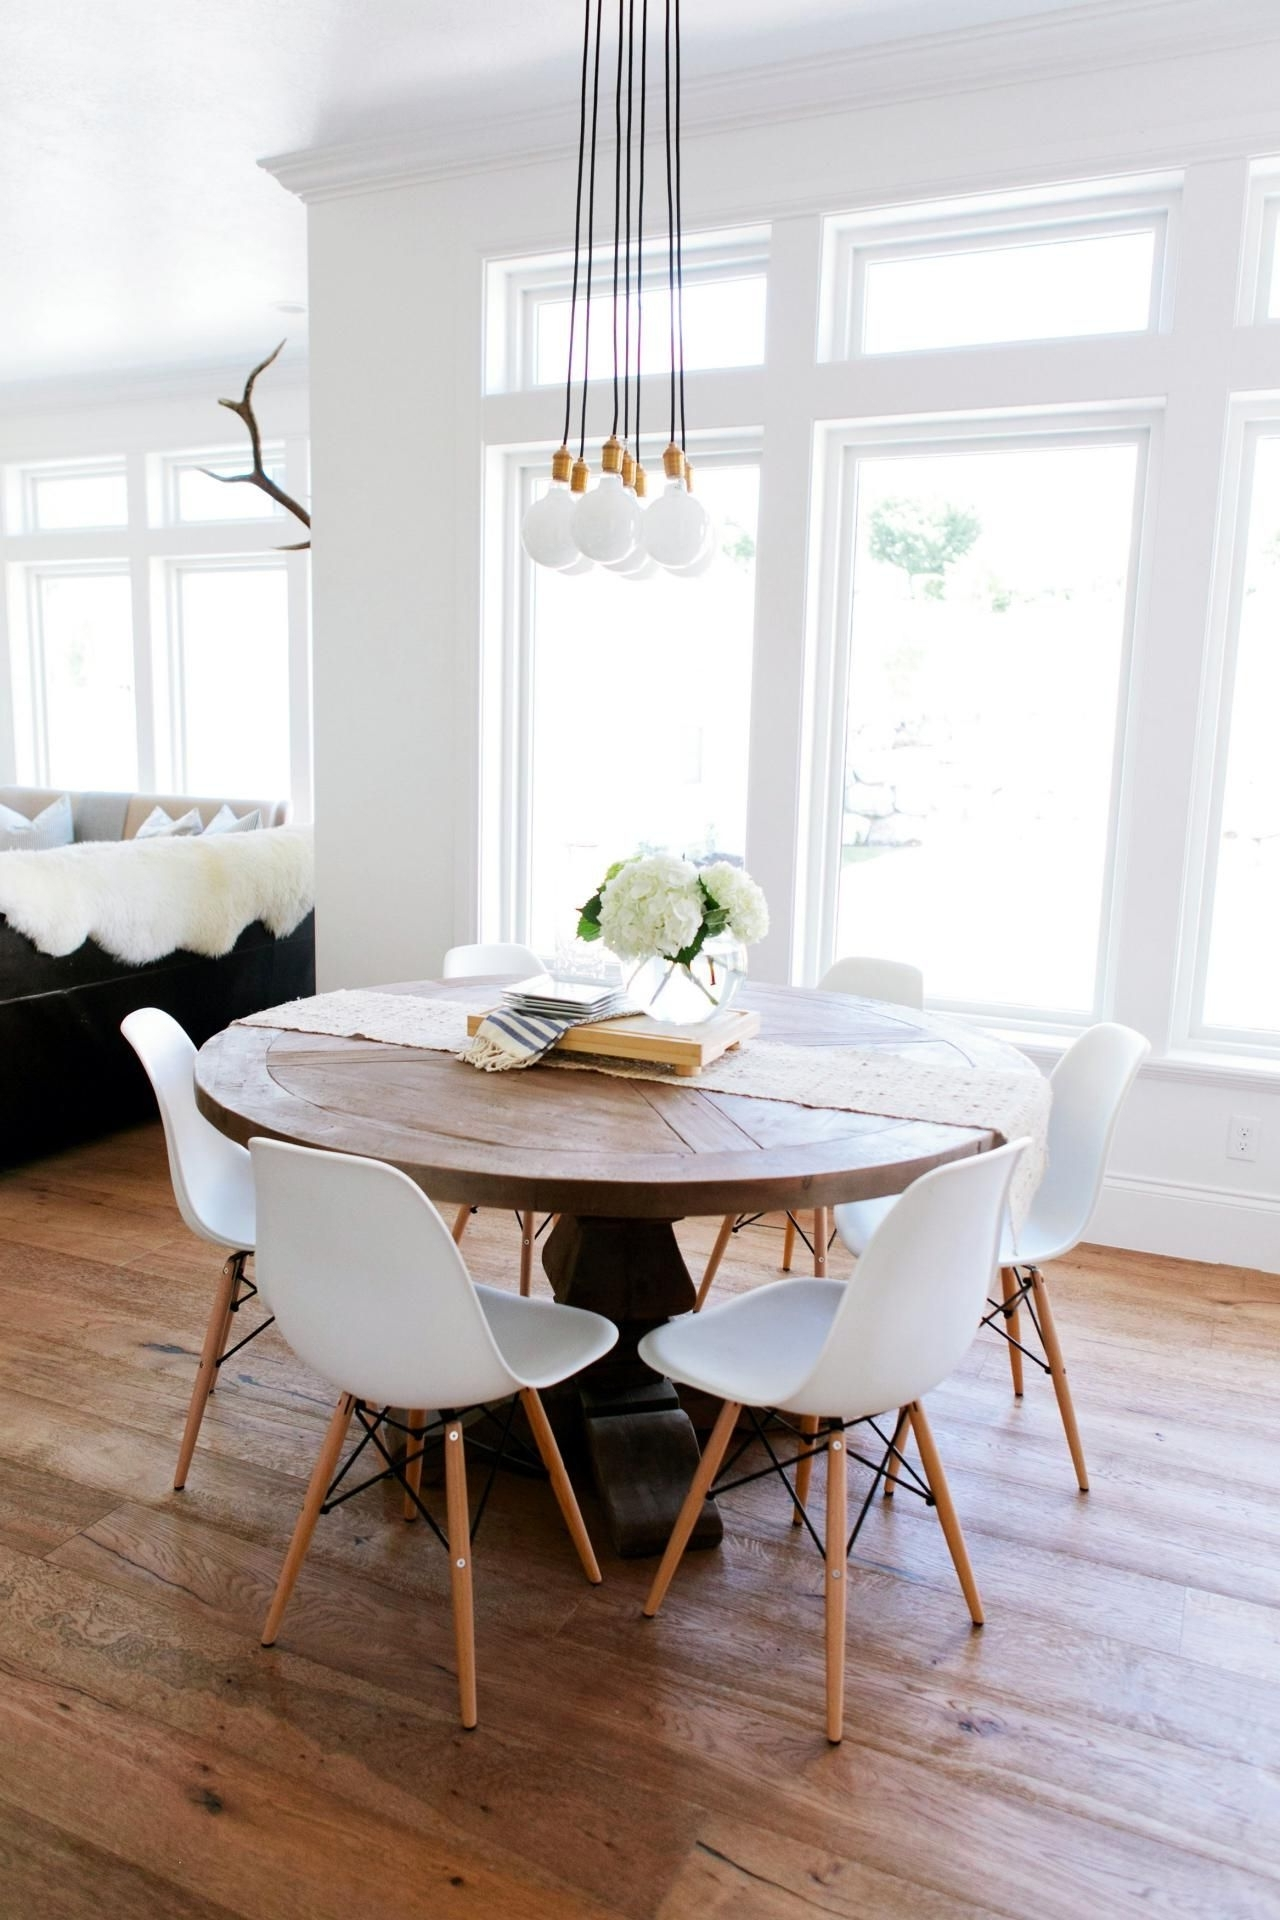 A Rustic Round Wood Table Surroundedwhite Eames Dining Chairs Pertaining To Famous Small Round White Dining Tables (View 2 of 25)